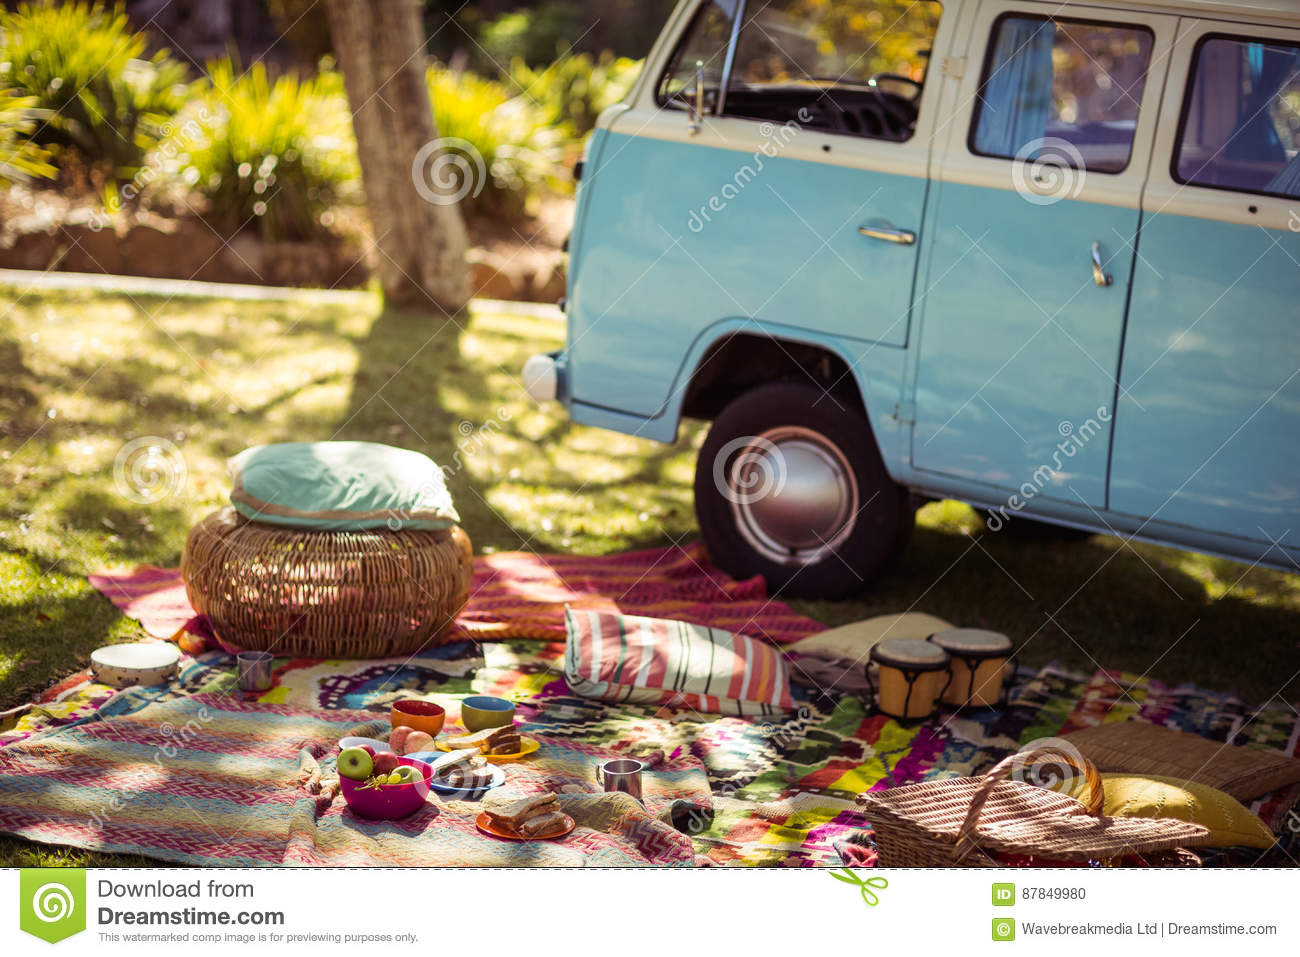 Picnic accessories scattered on blanket next to campervan in park